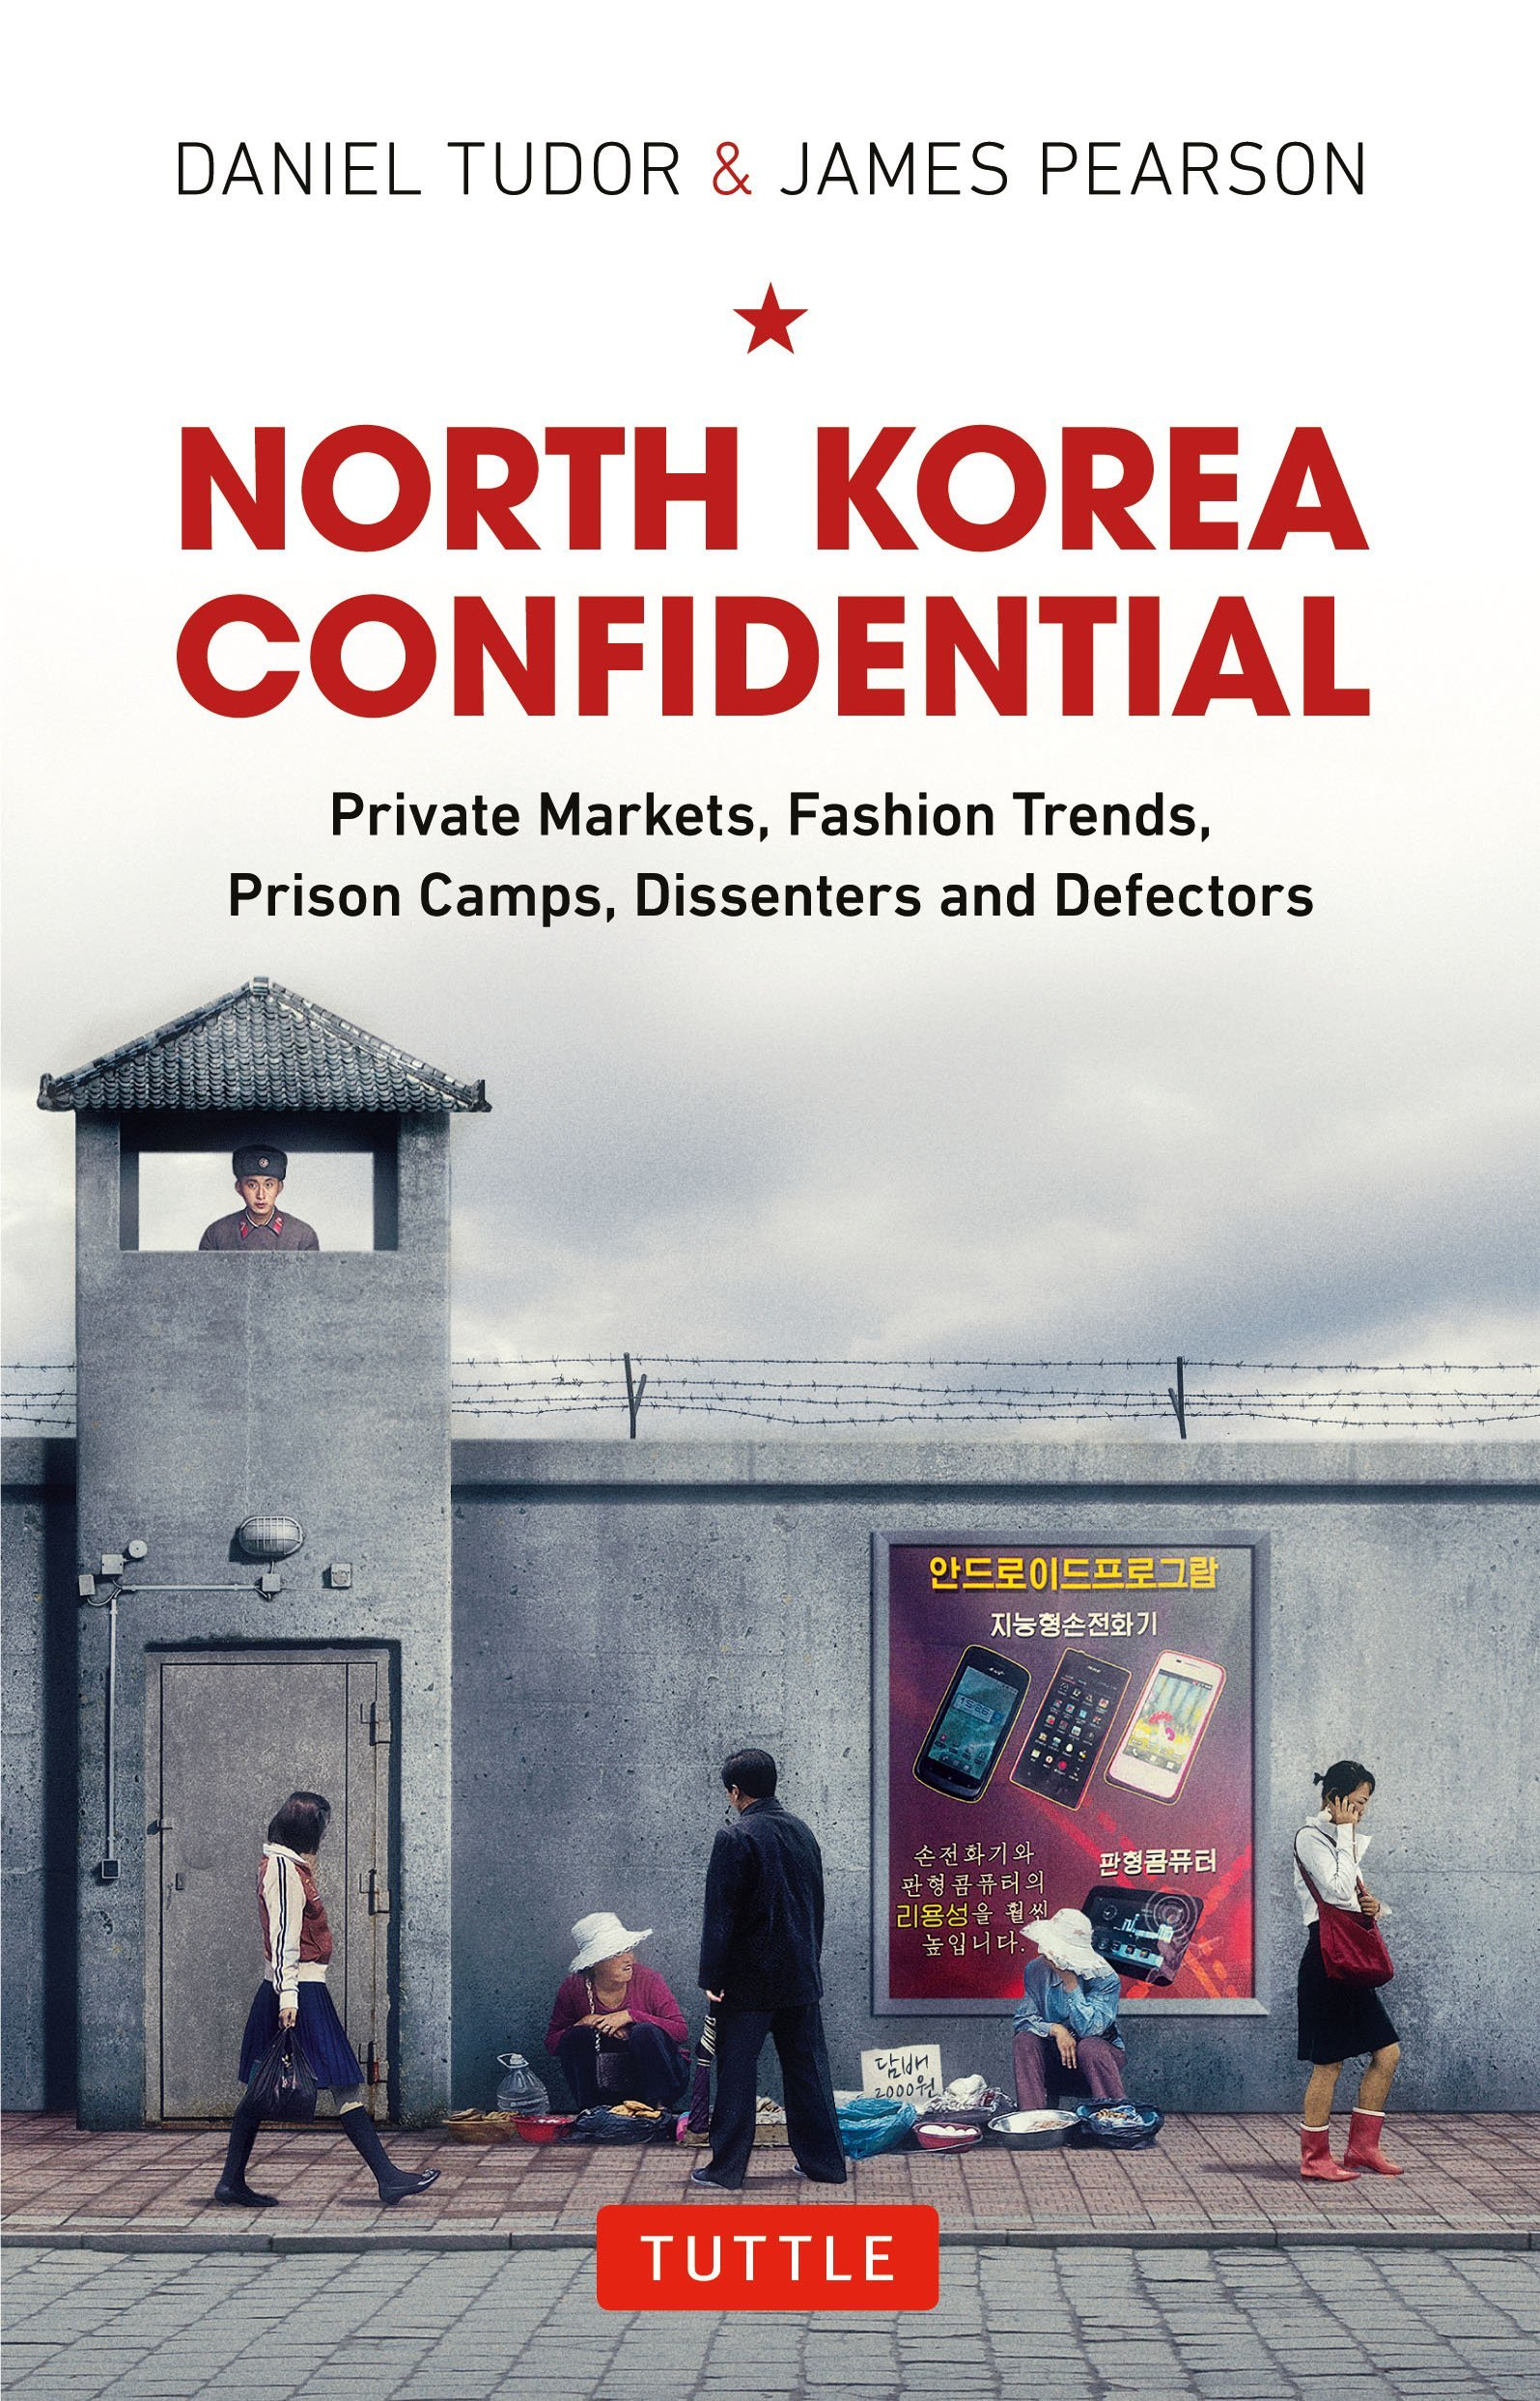 North Korea Confidential  Private Markets, Fashion Trends, Prison Camps, Dissenters and Defectors